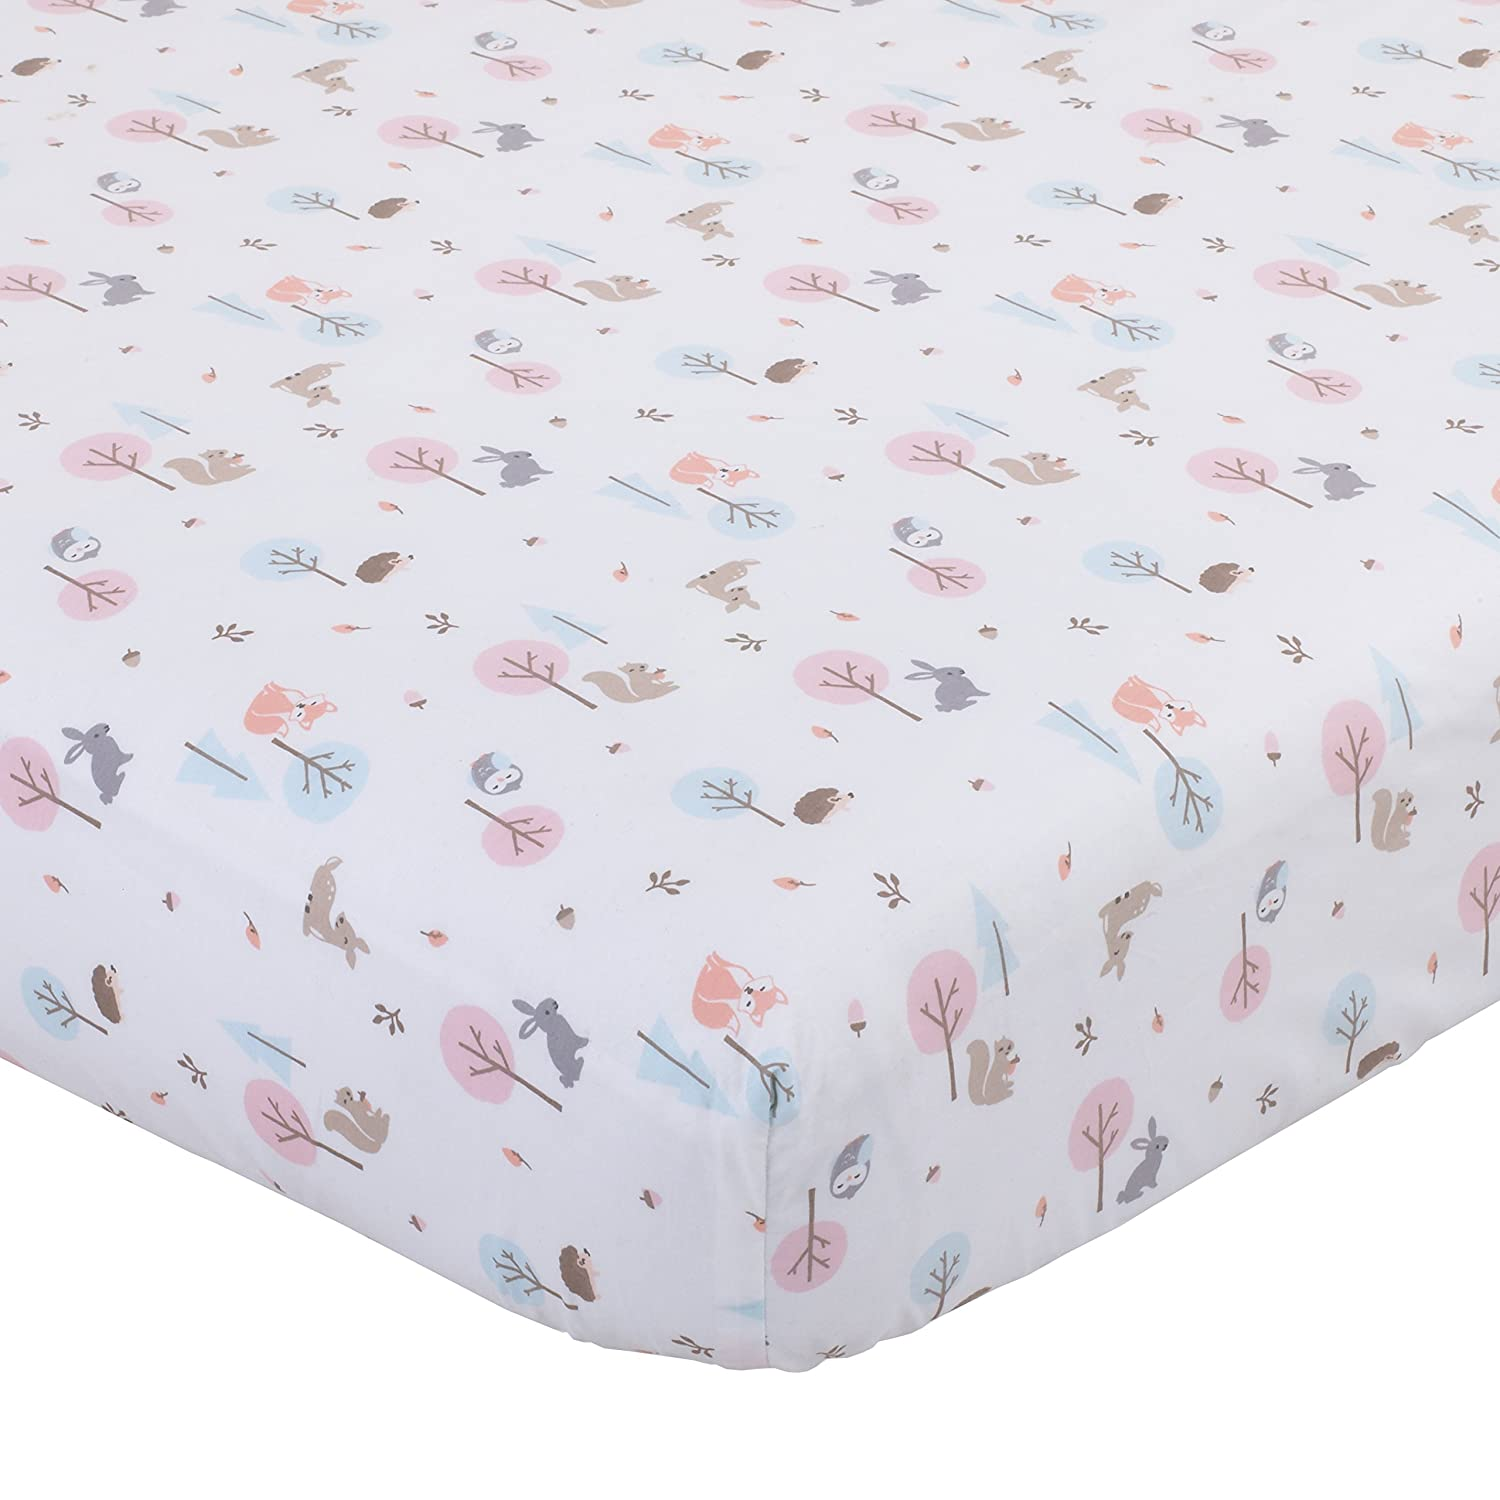 Carter's Woodland Meadow Forest/Deer/Owl 100% Cotton Fitted Crib Sheet/Pink/Aqua/White Crown Crafts Infant Products 3190003